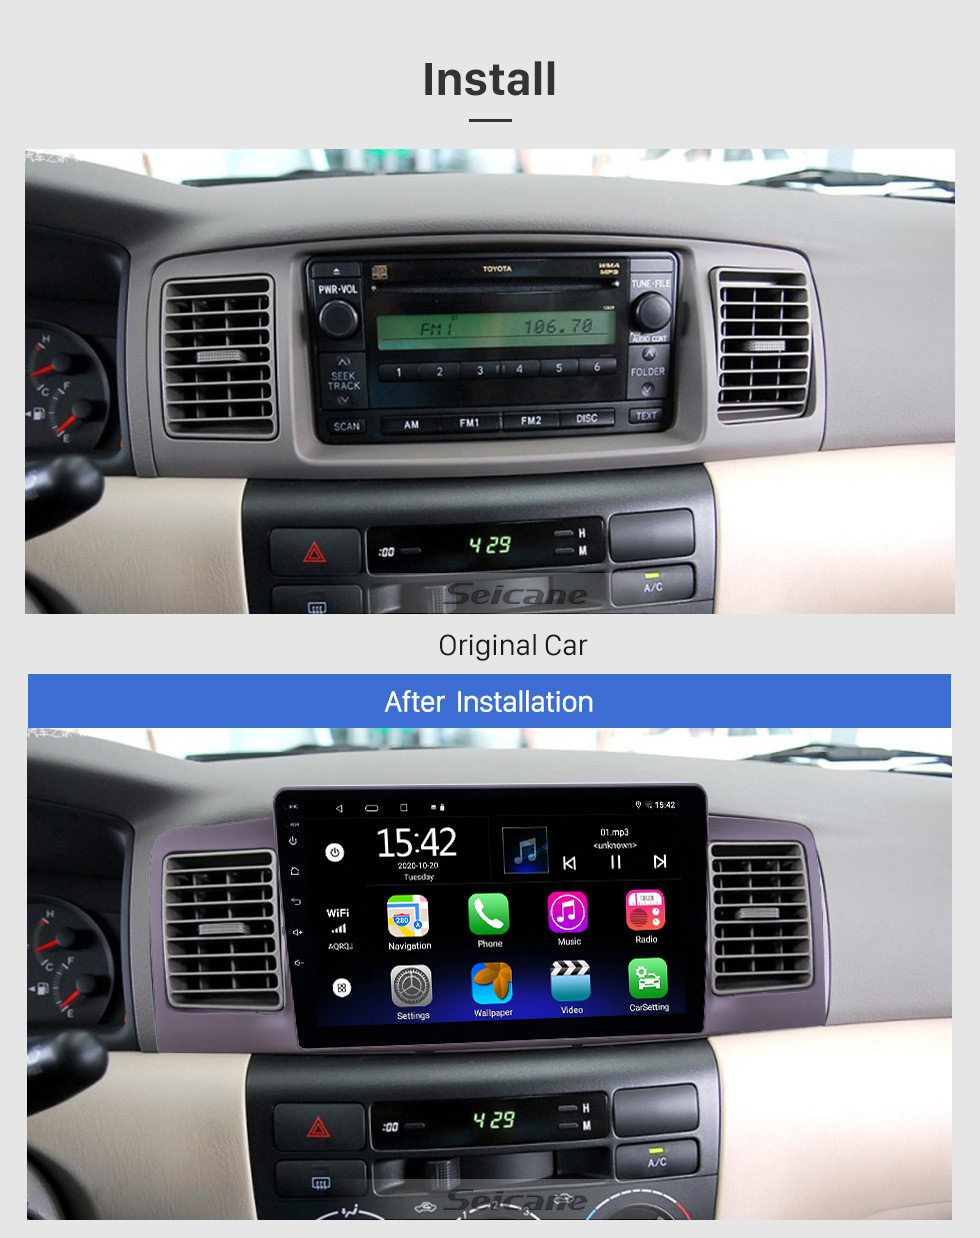 Seicane HD Touchscreen 9 inch Android 10.0 GPS Navigation Radio for 2006-2013 Toyota Corolla with Bluetooth AUX support Carplay DAB+ OBD